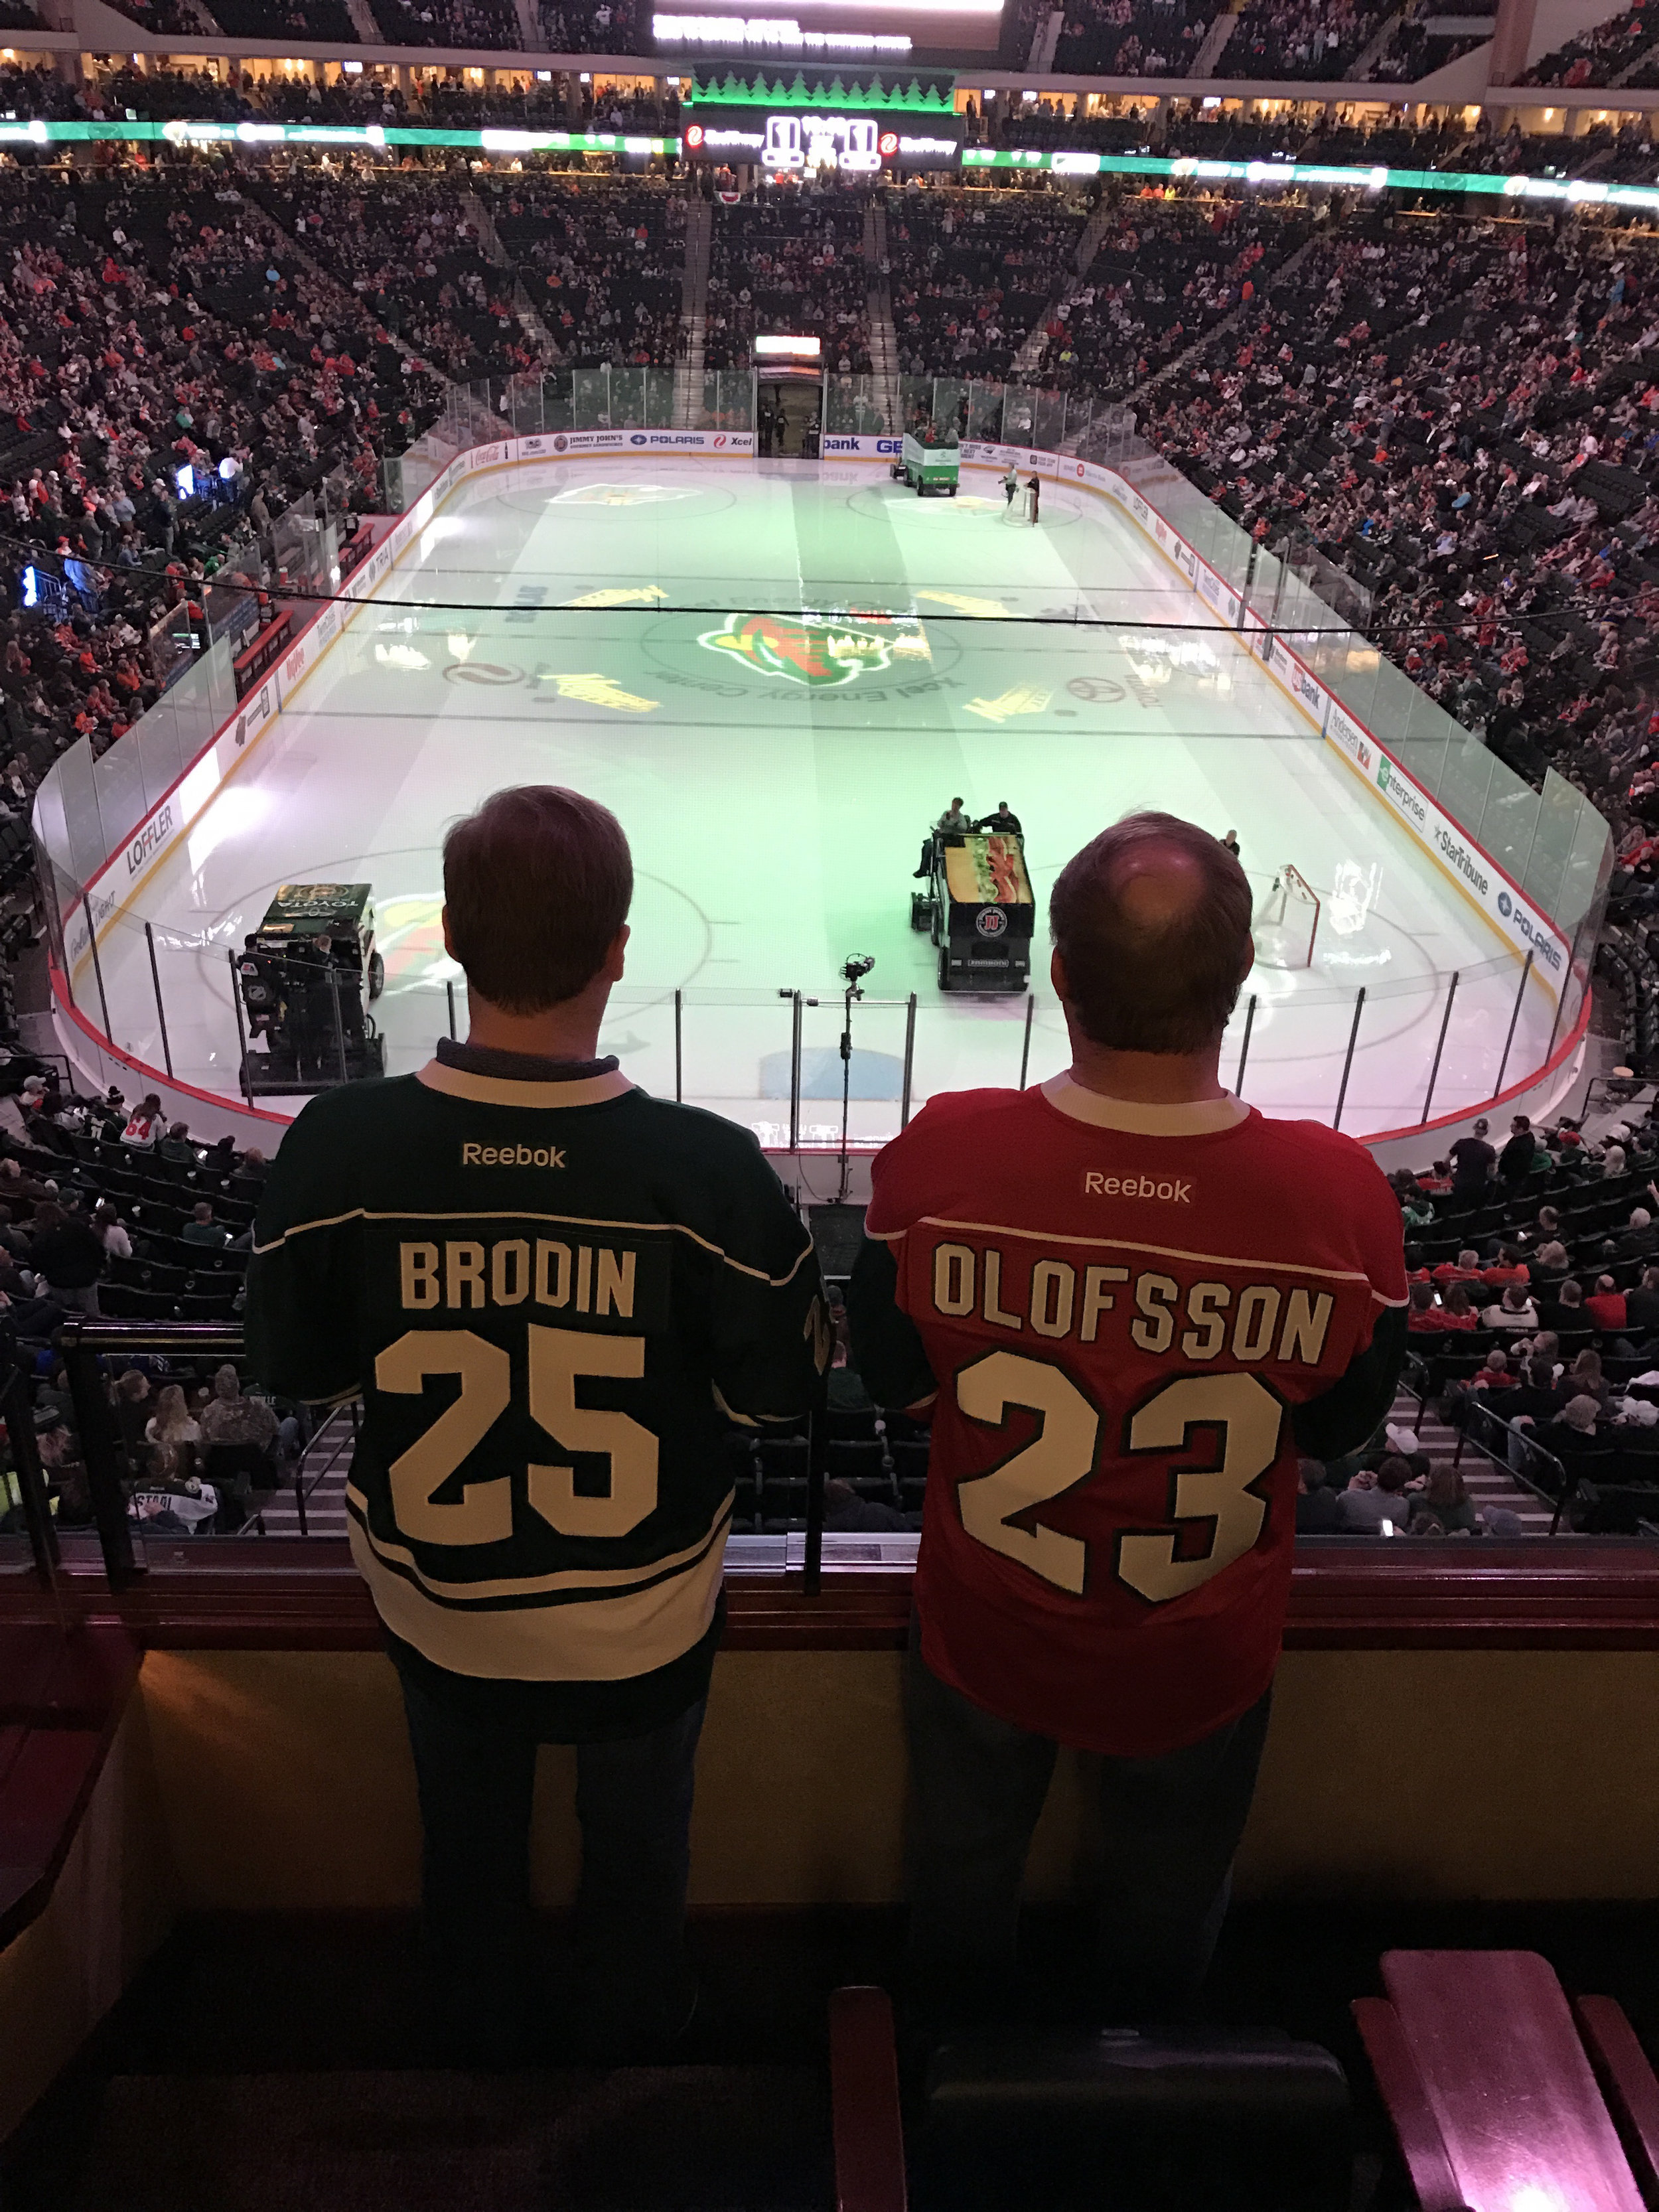 Coincidentally, Brodin and Olfosson were playing on the same D-line tonight. Mark and Sean just picked these jerseys because 25 and 23 are their lucky numbers.